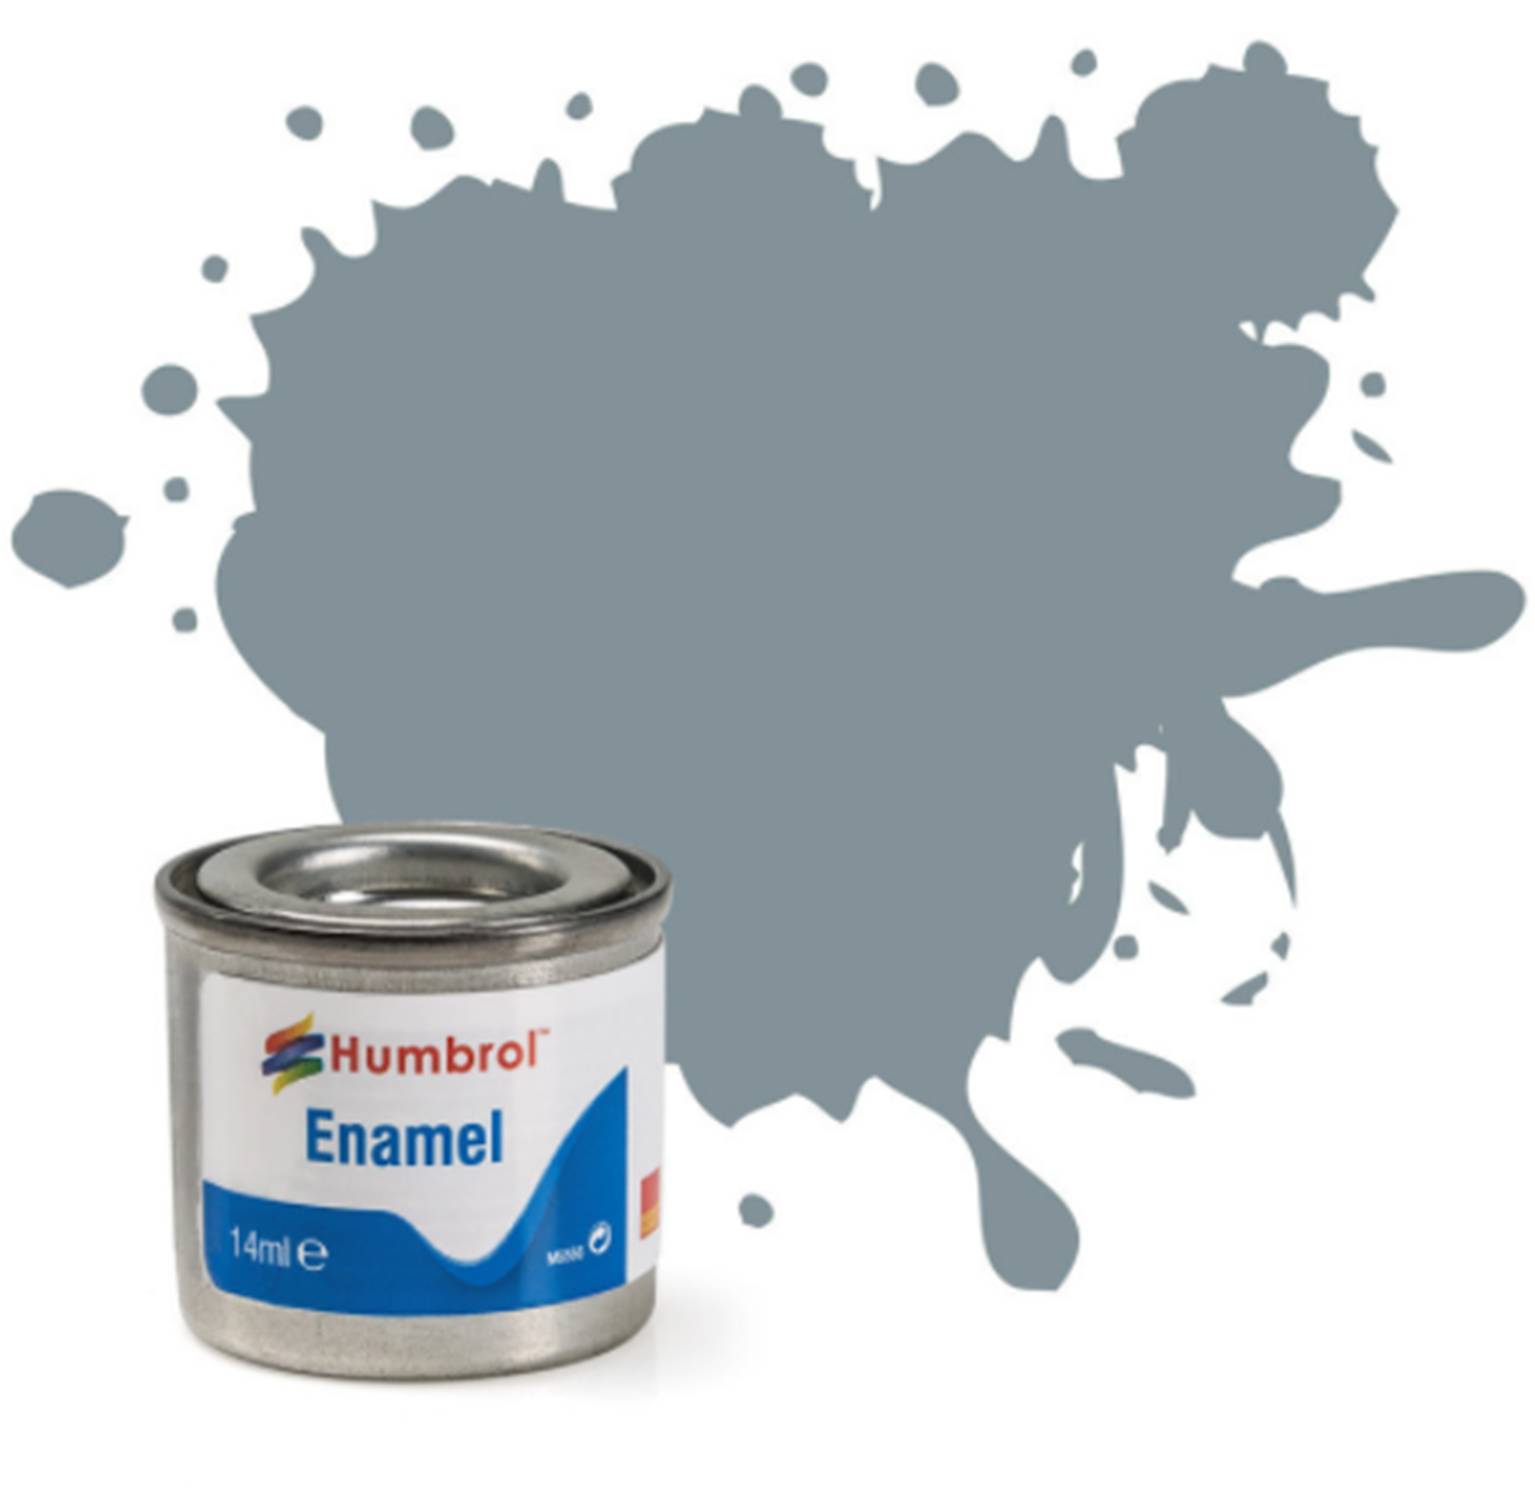 No 87 Steel Grey Matt Enamel Paint (14ml)